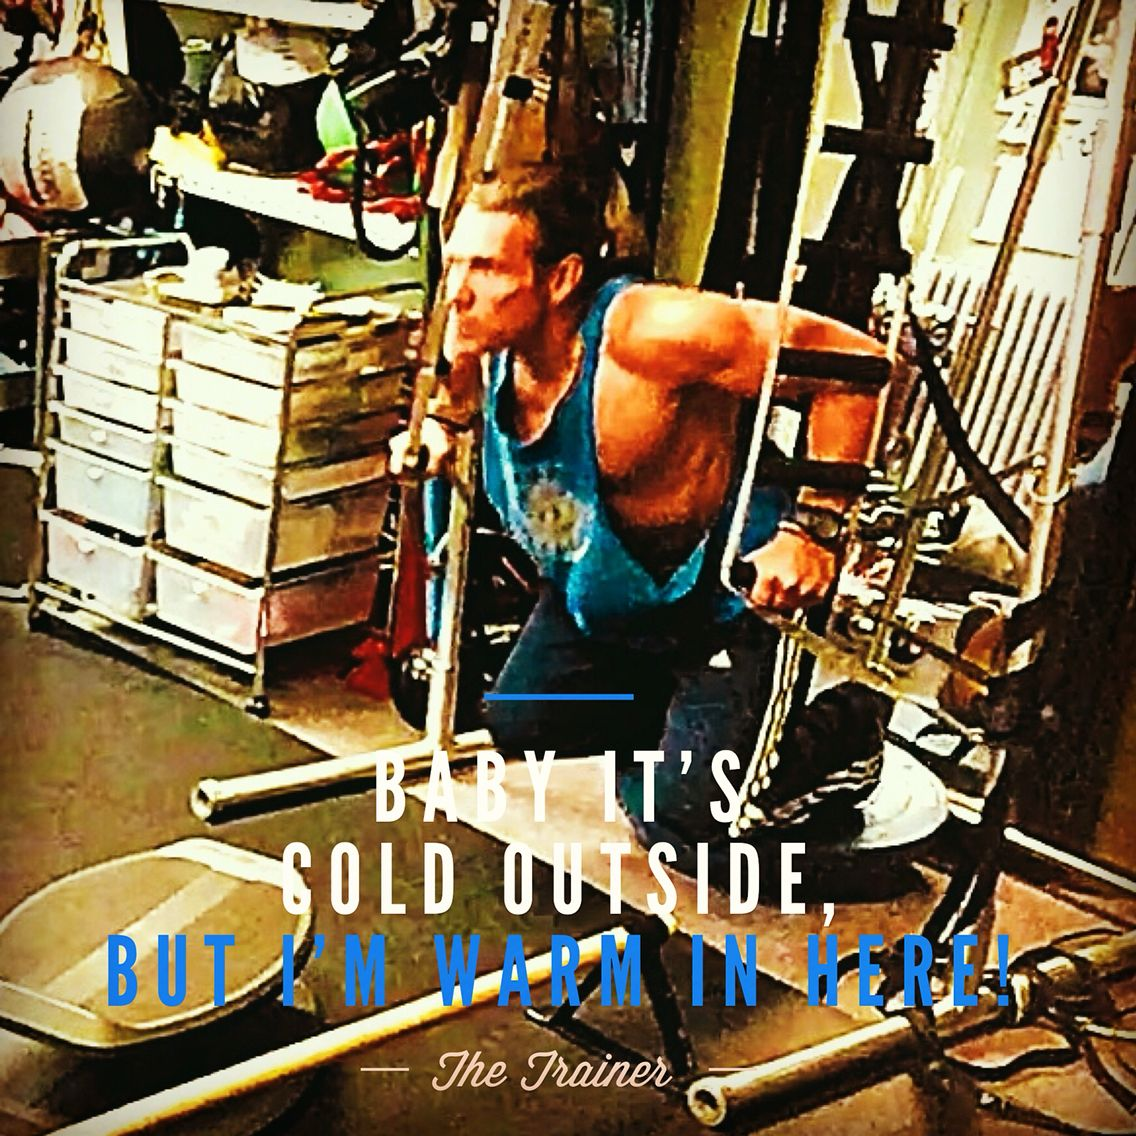 Baby it's cold outside but it's toasty having fun and working out! The Trainer #thetrainer #hoodriver#personaltrainer #functionaltraining #functionaltrainer#rusticparkour #insideoutfitnesshoodriver #ultramarathon #fitness #functionaltrainer #health #running   #fitnessaddict  #workout  #cardio  #train #training   #healthy #parkour #freerunning #columbiarivergorge #active #strong #motivation  #determination #lifestyle #getfit #fatloss #fatfighters7 #exercise